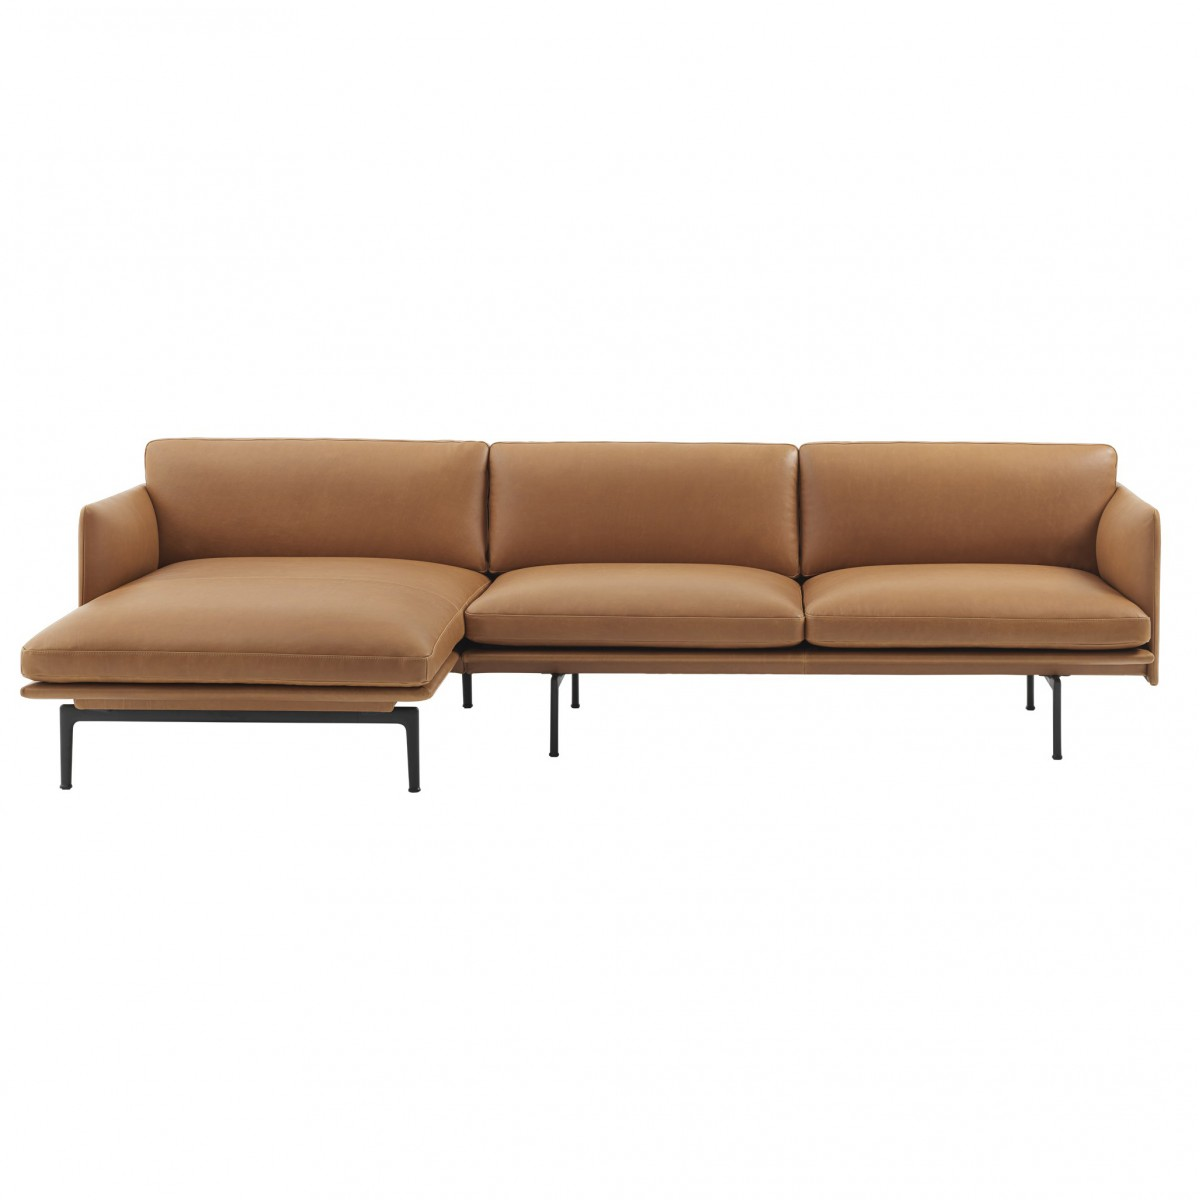 Awesome Outline Lounge Chair Sofa In Leather Muuto At Colonel Shop Forskolin Free Trial Chair Design Images Forskolin Free Trialorg